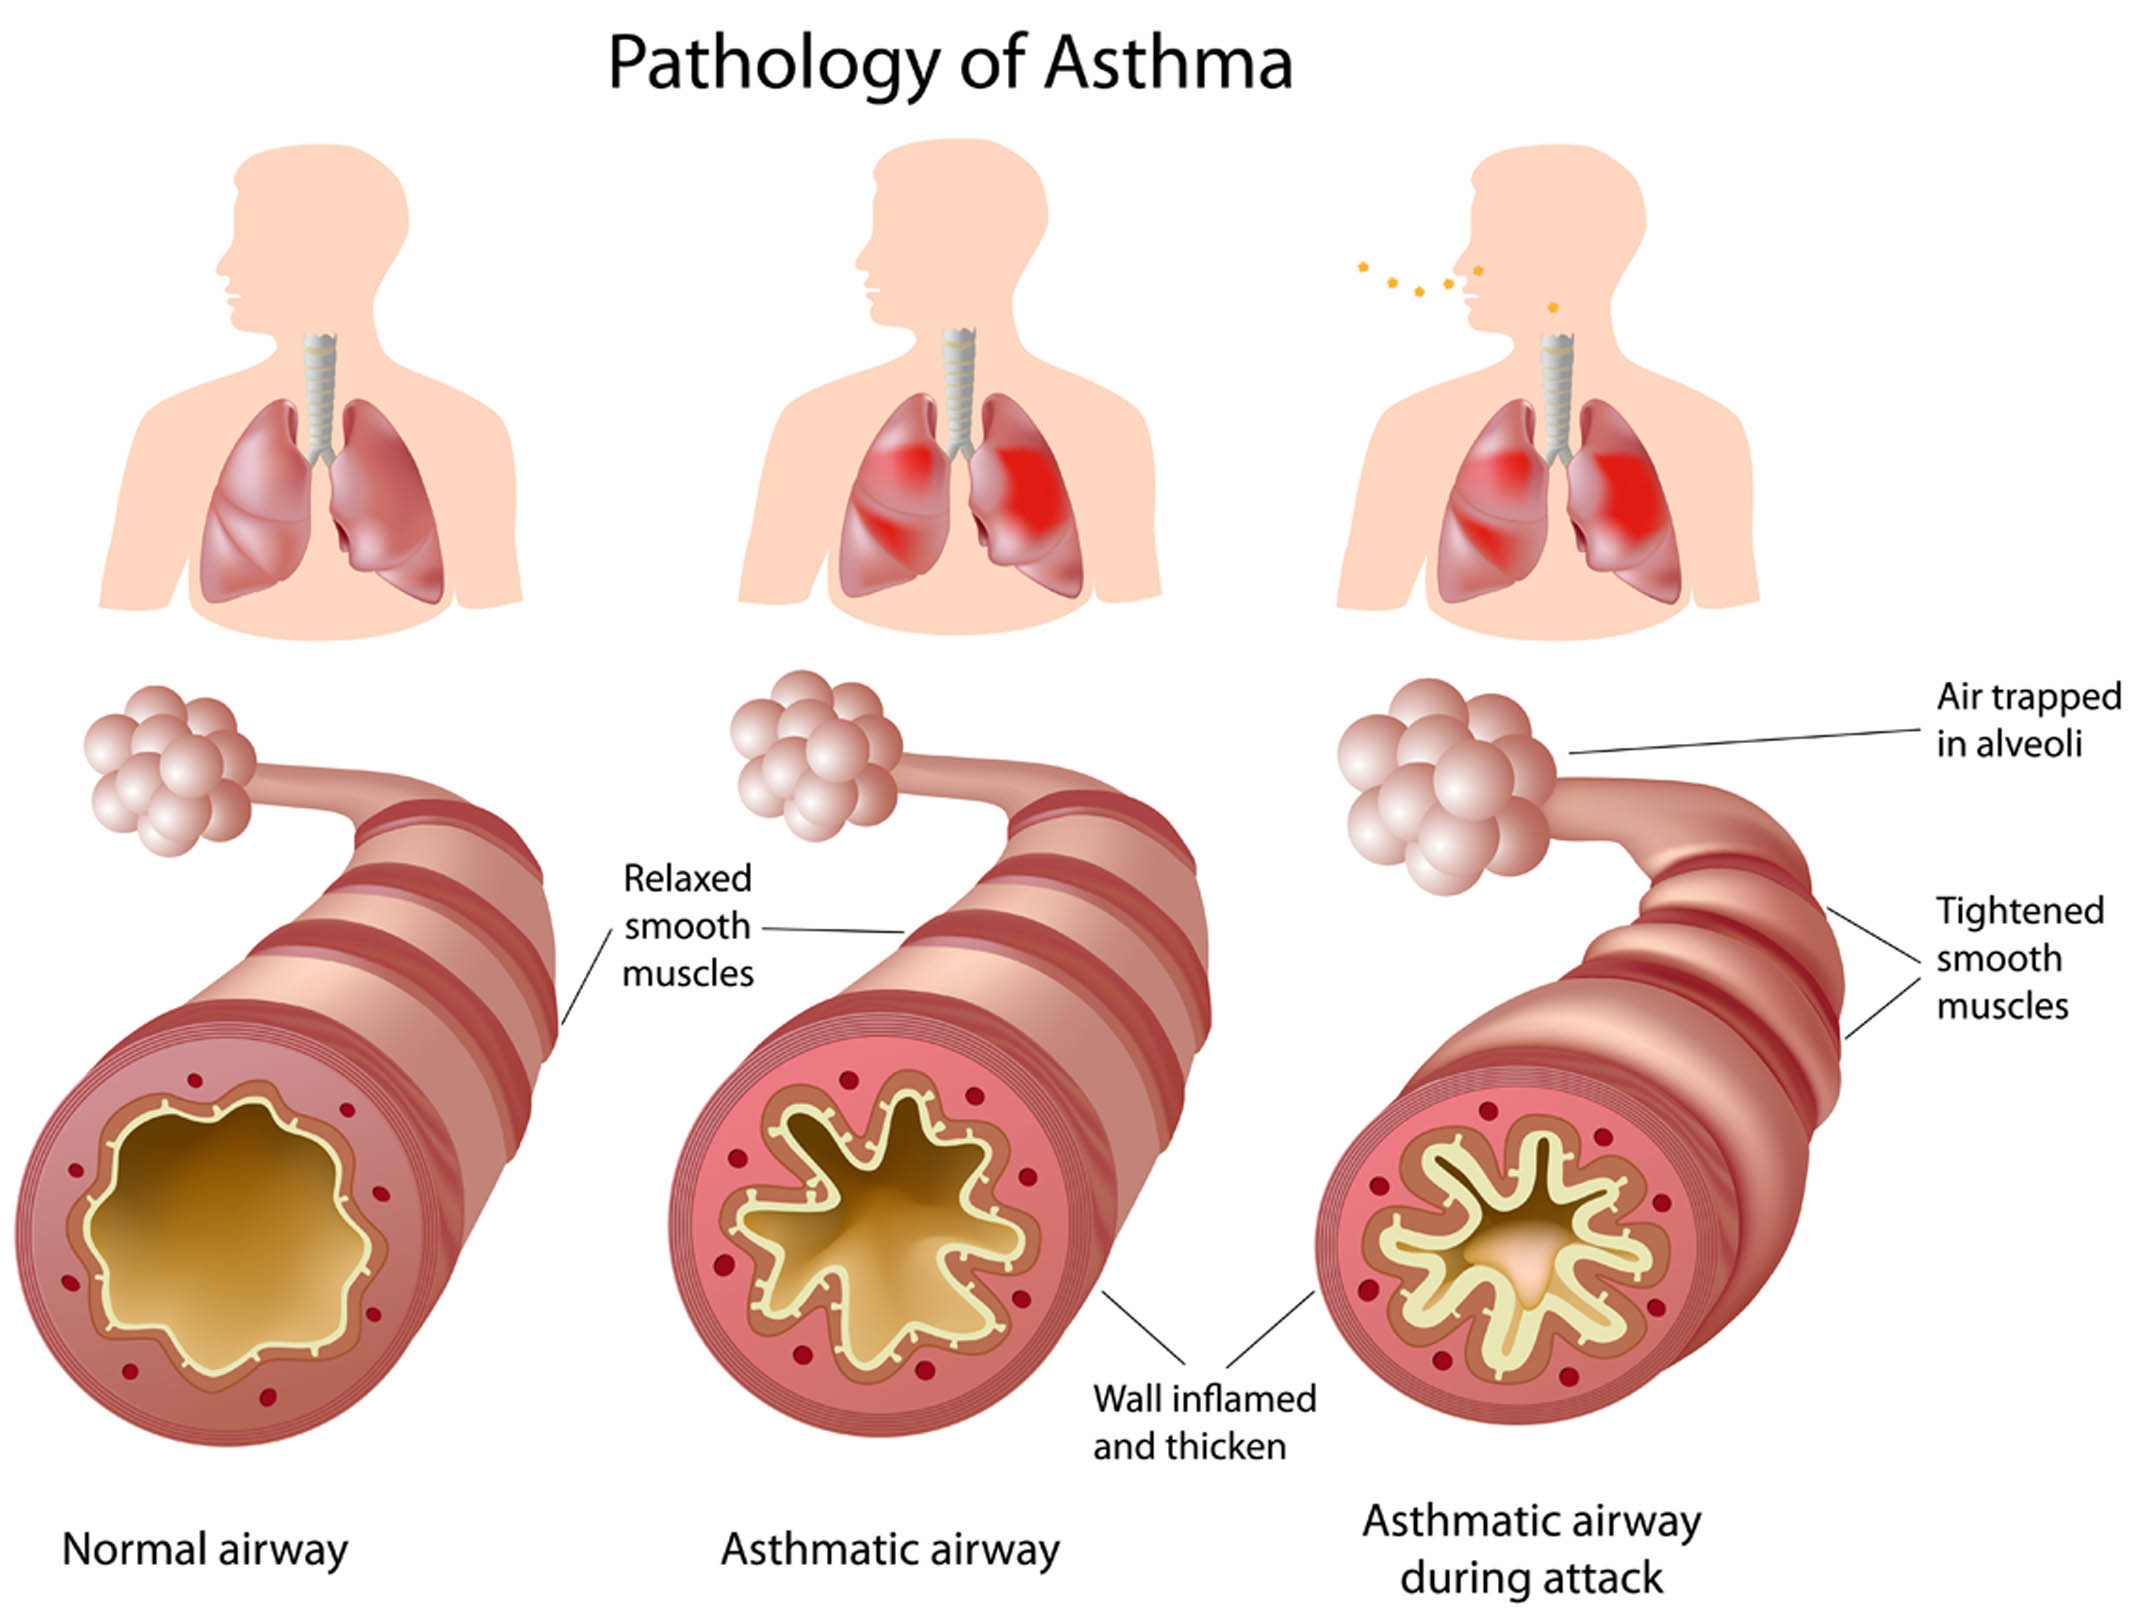 canadian asthma consensus guidelines 2 0 1 2 u p d a t e